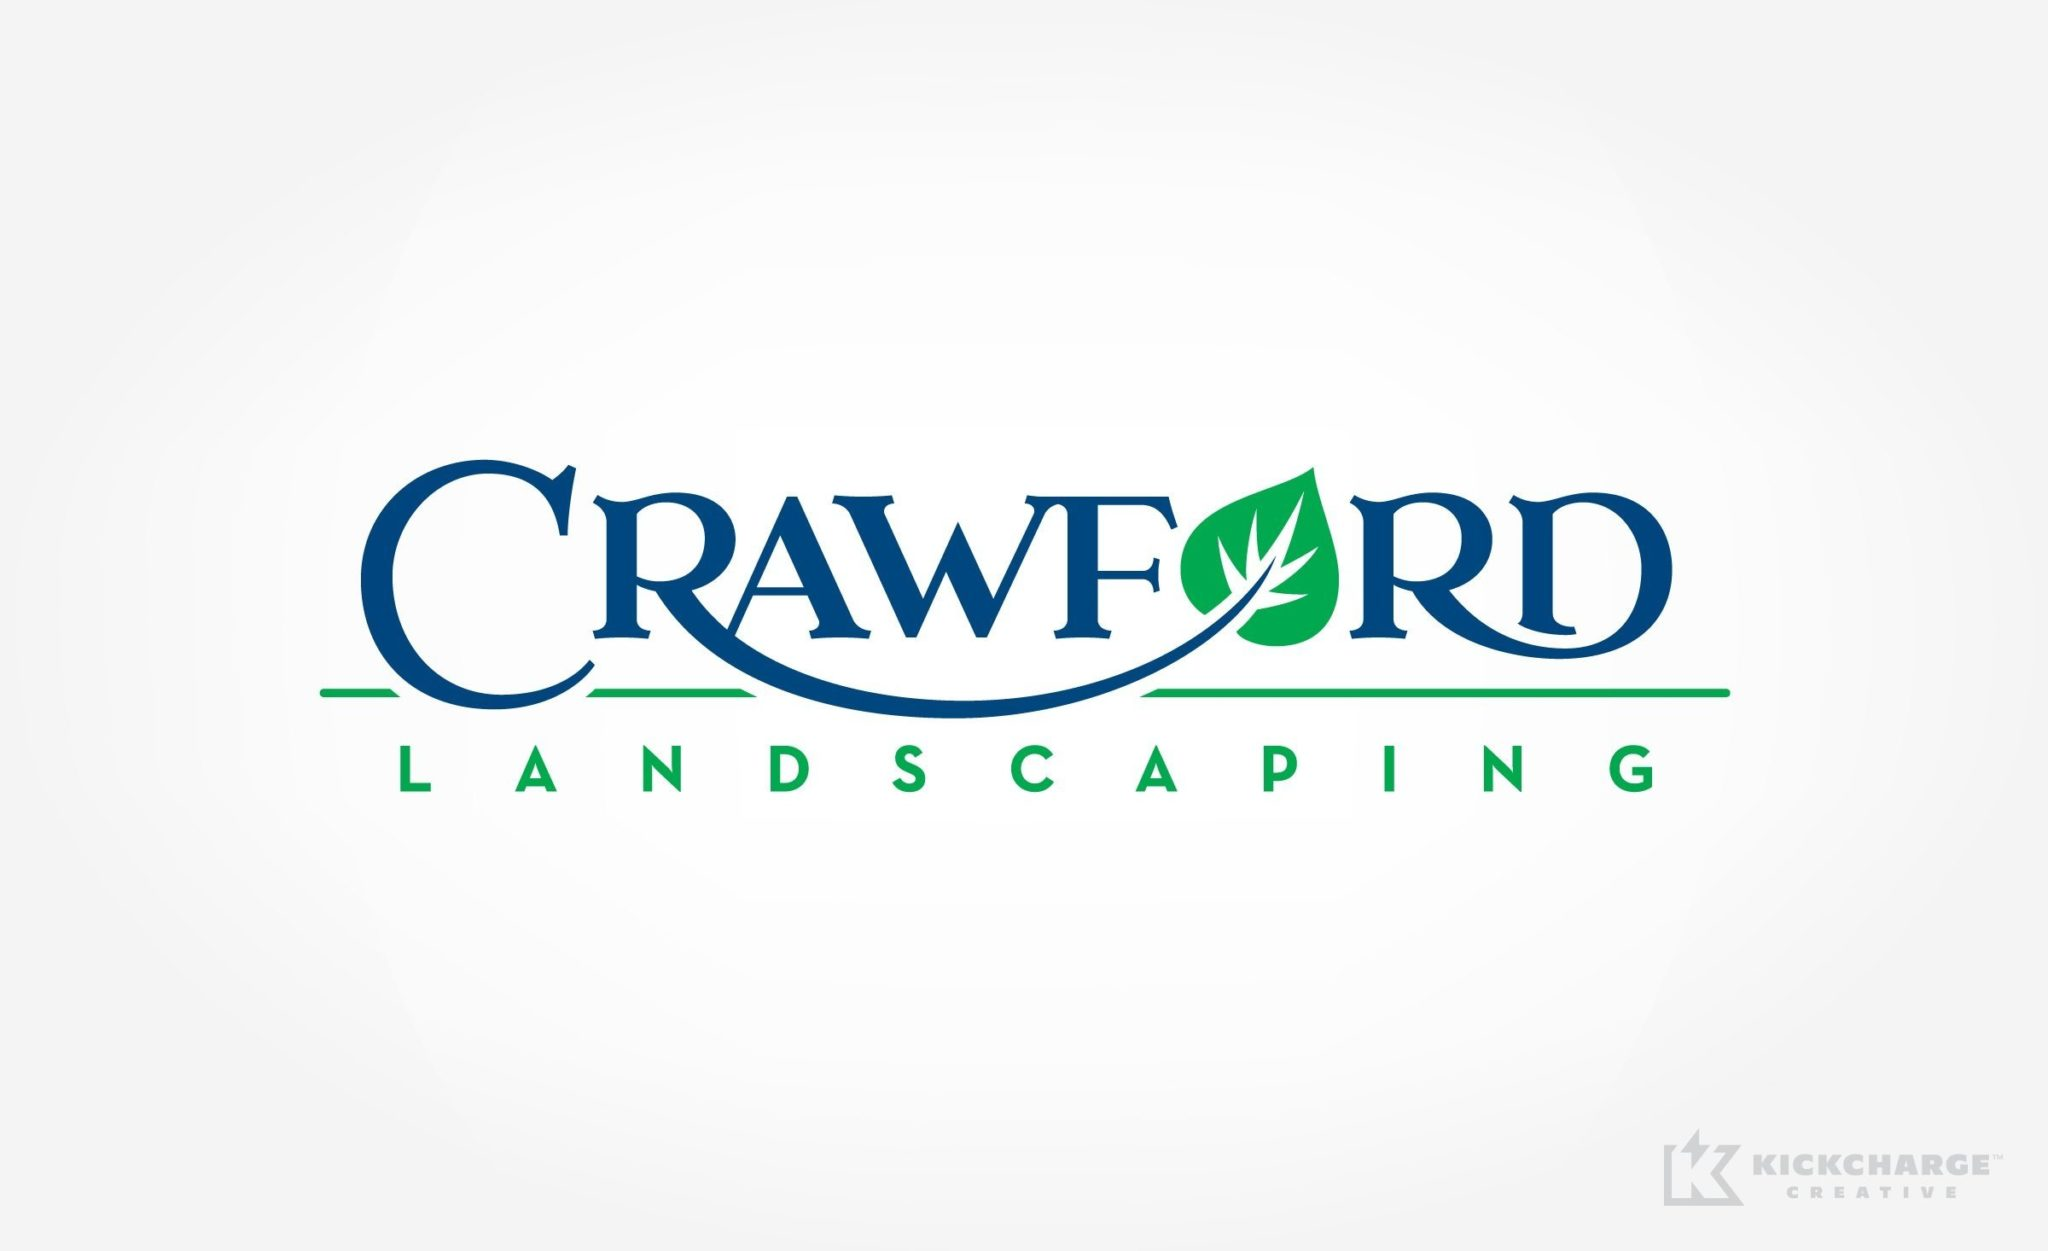 Crawford Landscaping Office and Materials Yard